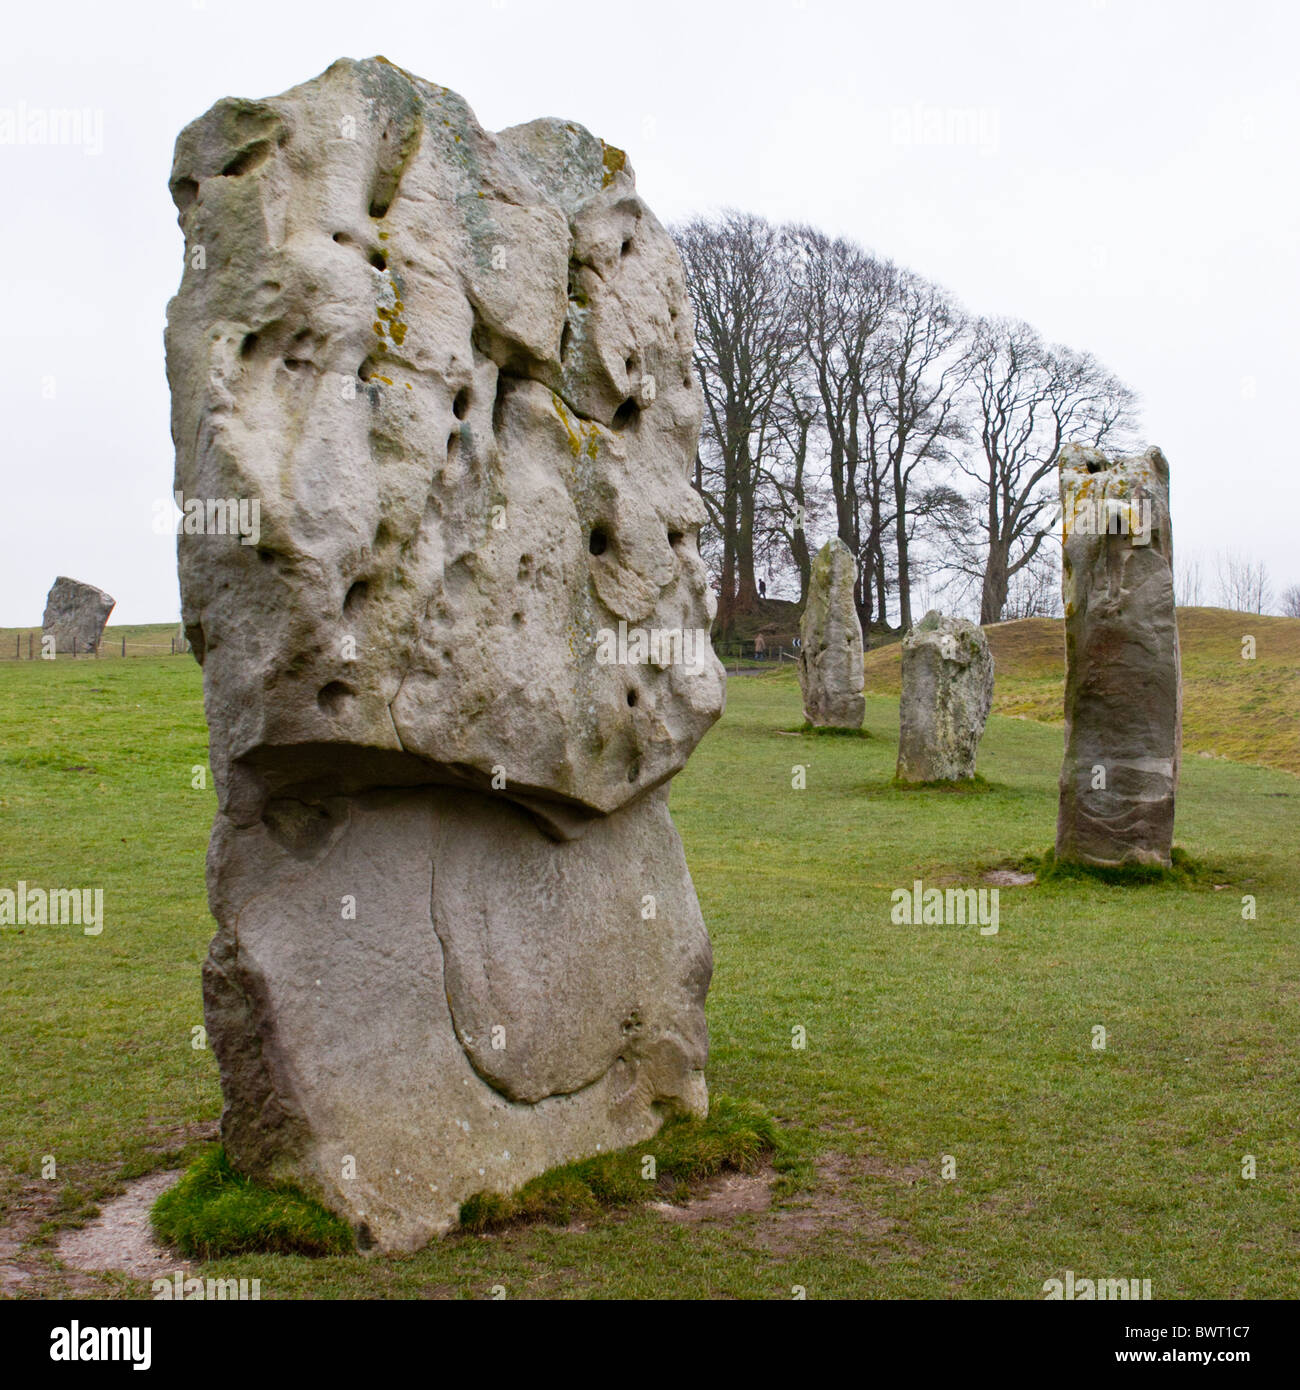 Standing stones at Avebury, Wiltshire, a 5000 year-old Neolithic monument and UNESCO world heritage site - Stock Image